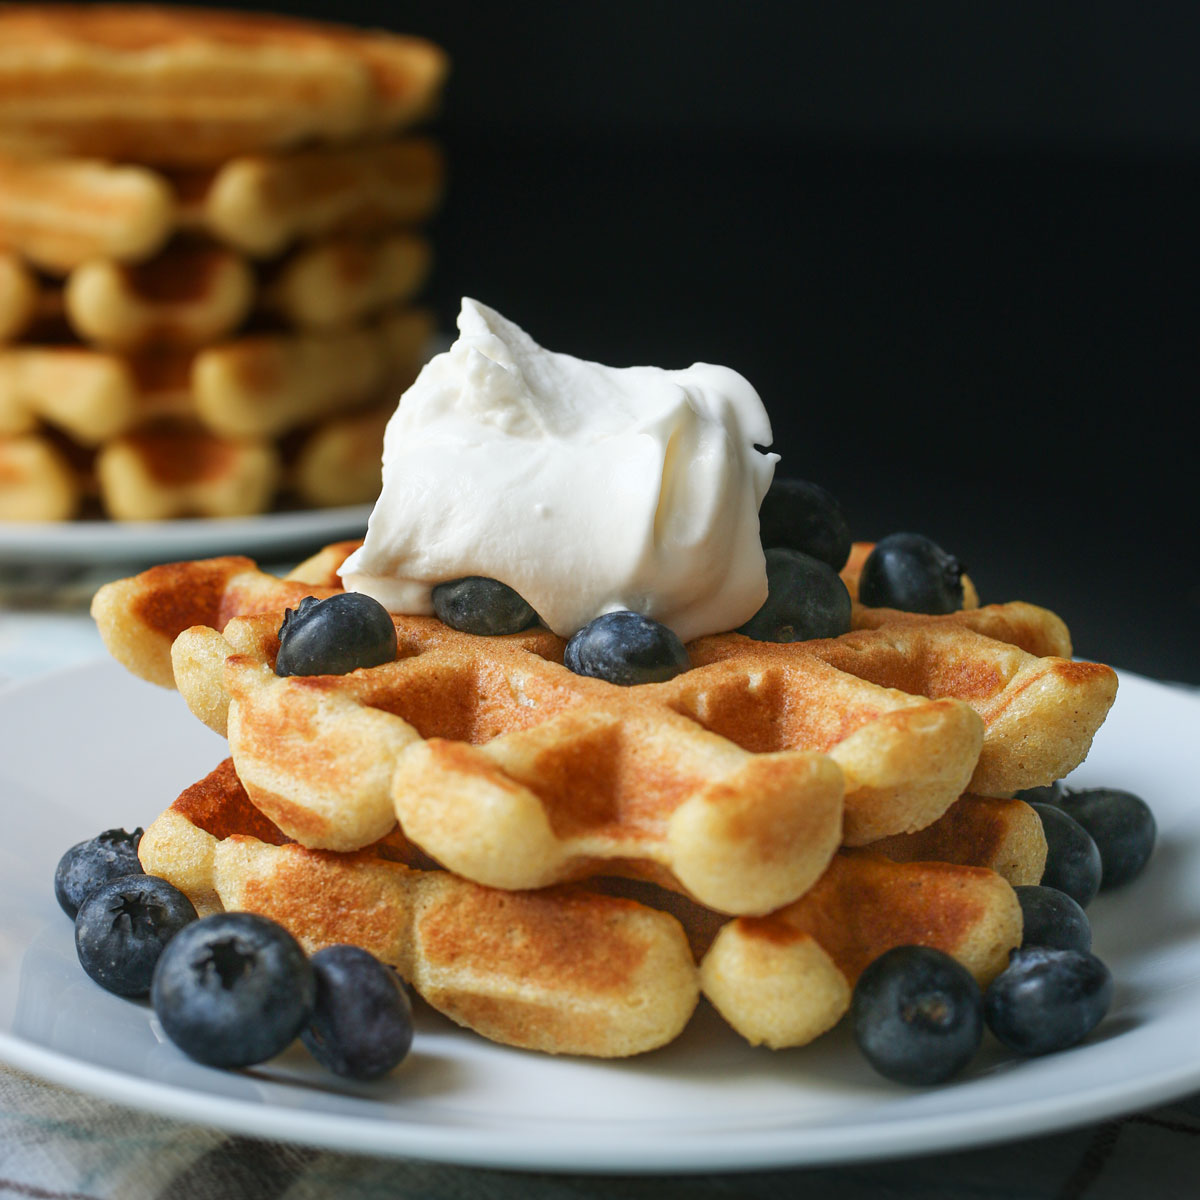 pair of cornbread waffles topped with blueberries and whipped cream on a white plate near a stack of waffles.